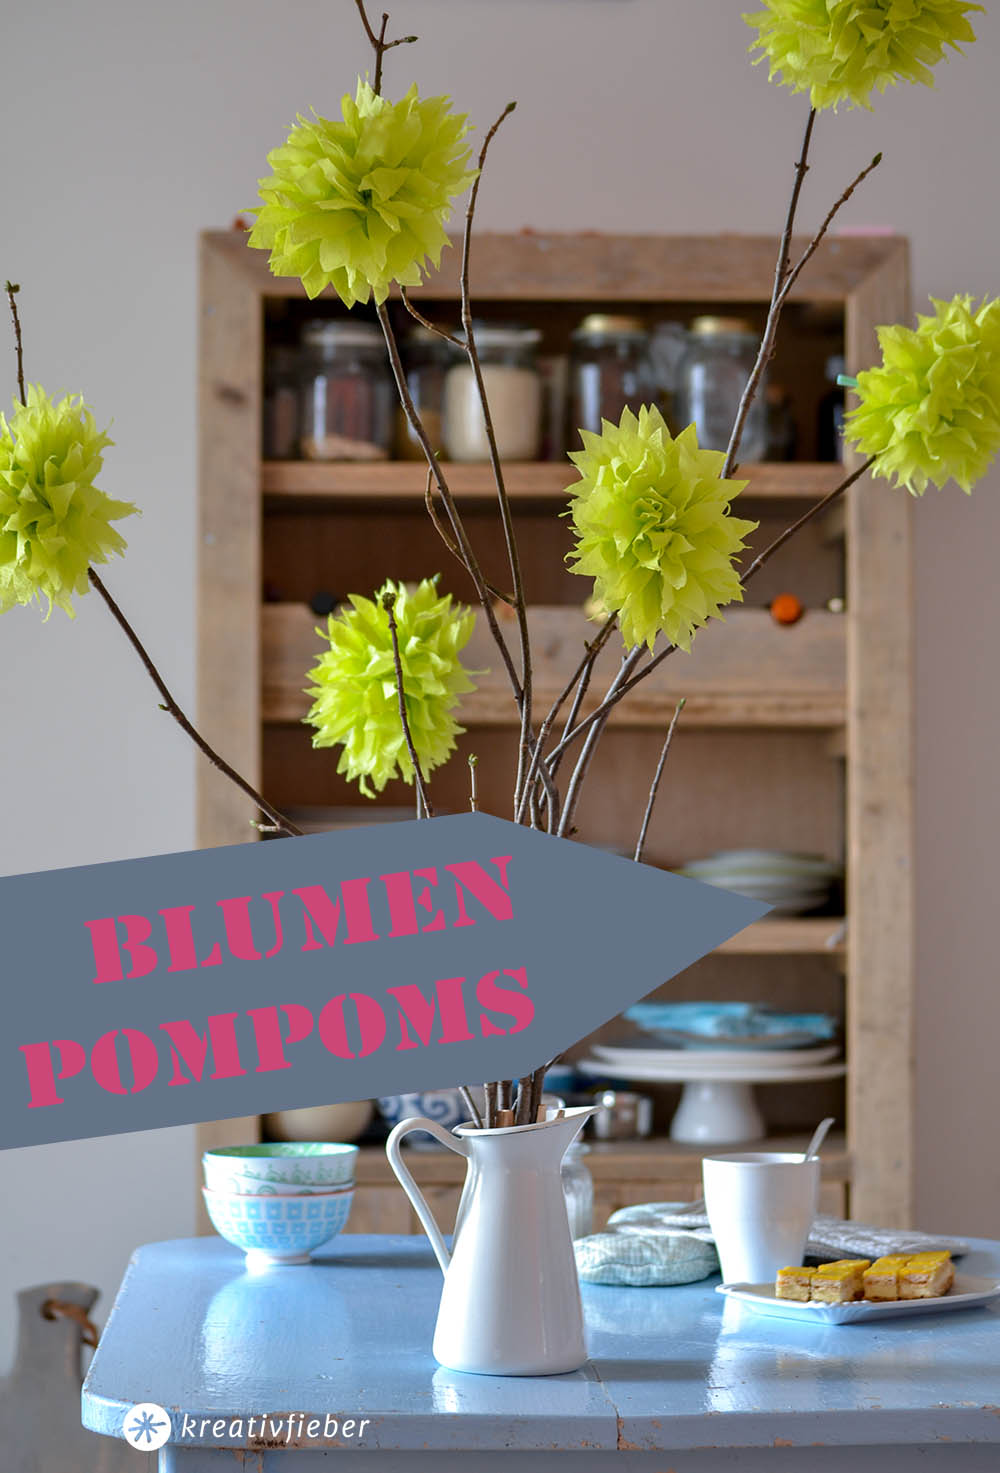 blumen pompoms servietten